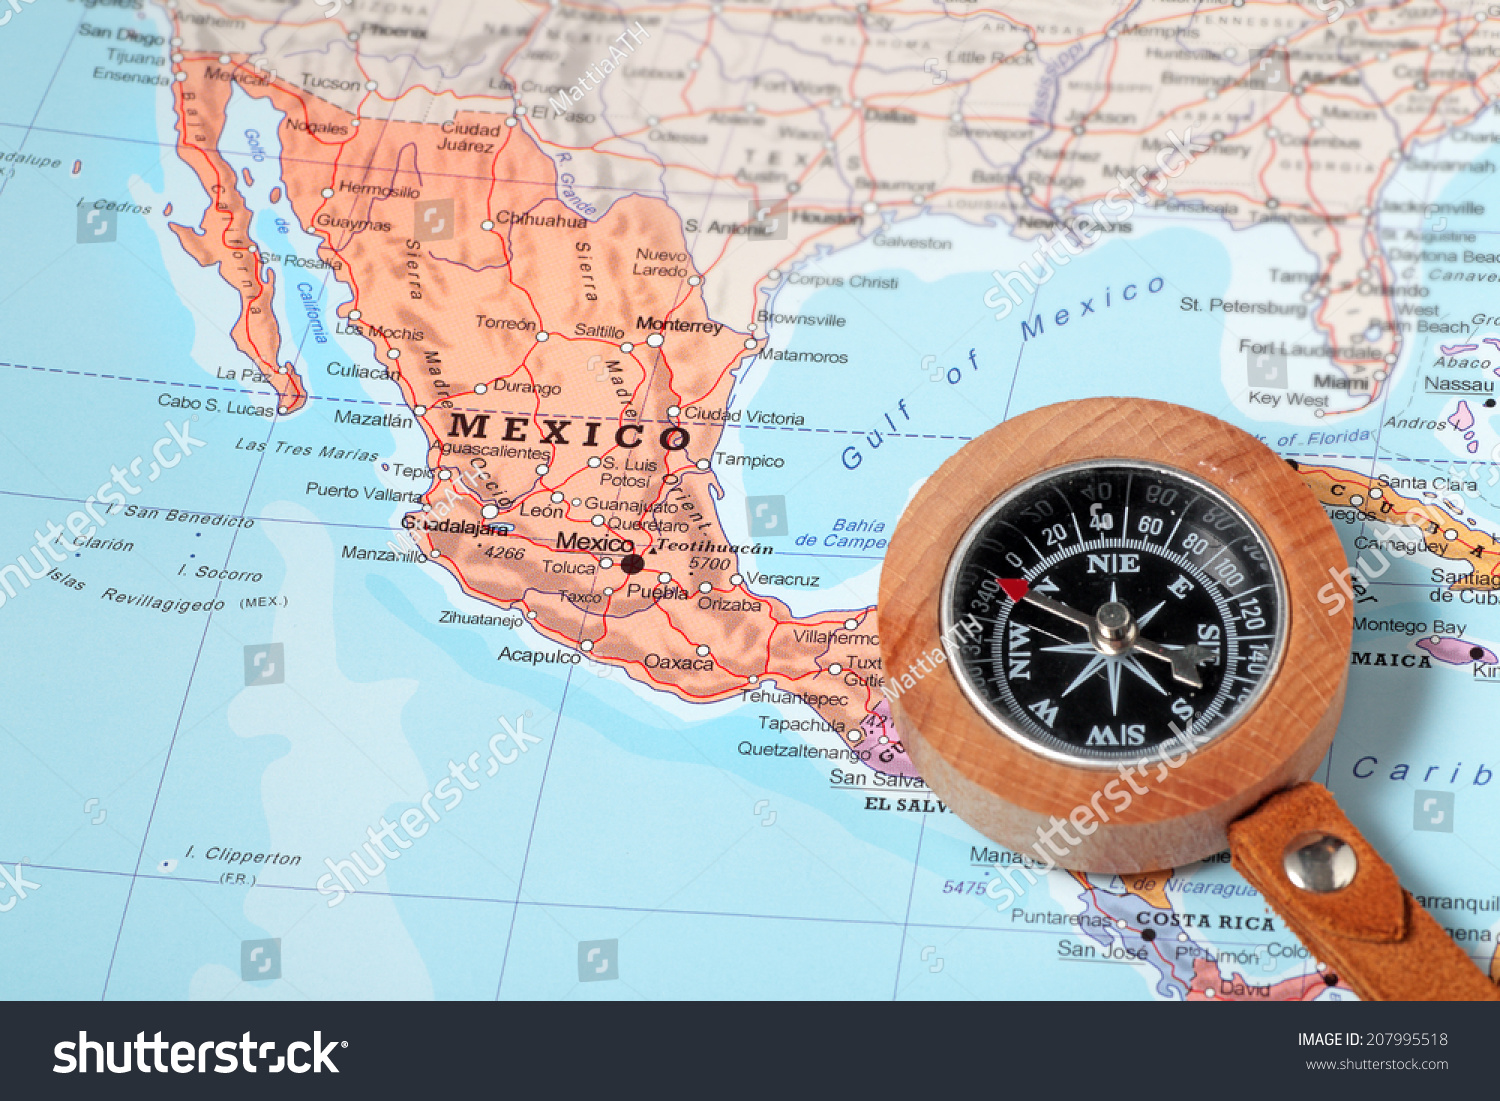 Compass On Map Pointing Mexico Planning Photo 207995518 – Mexico Travel Destinations Map